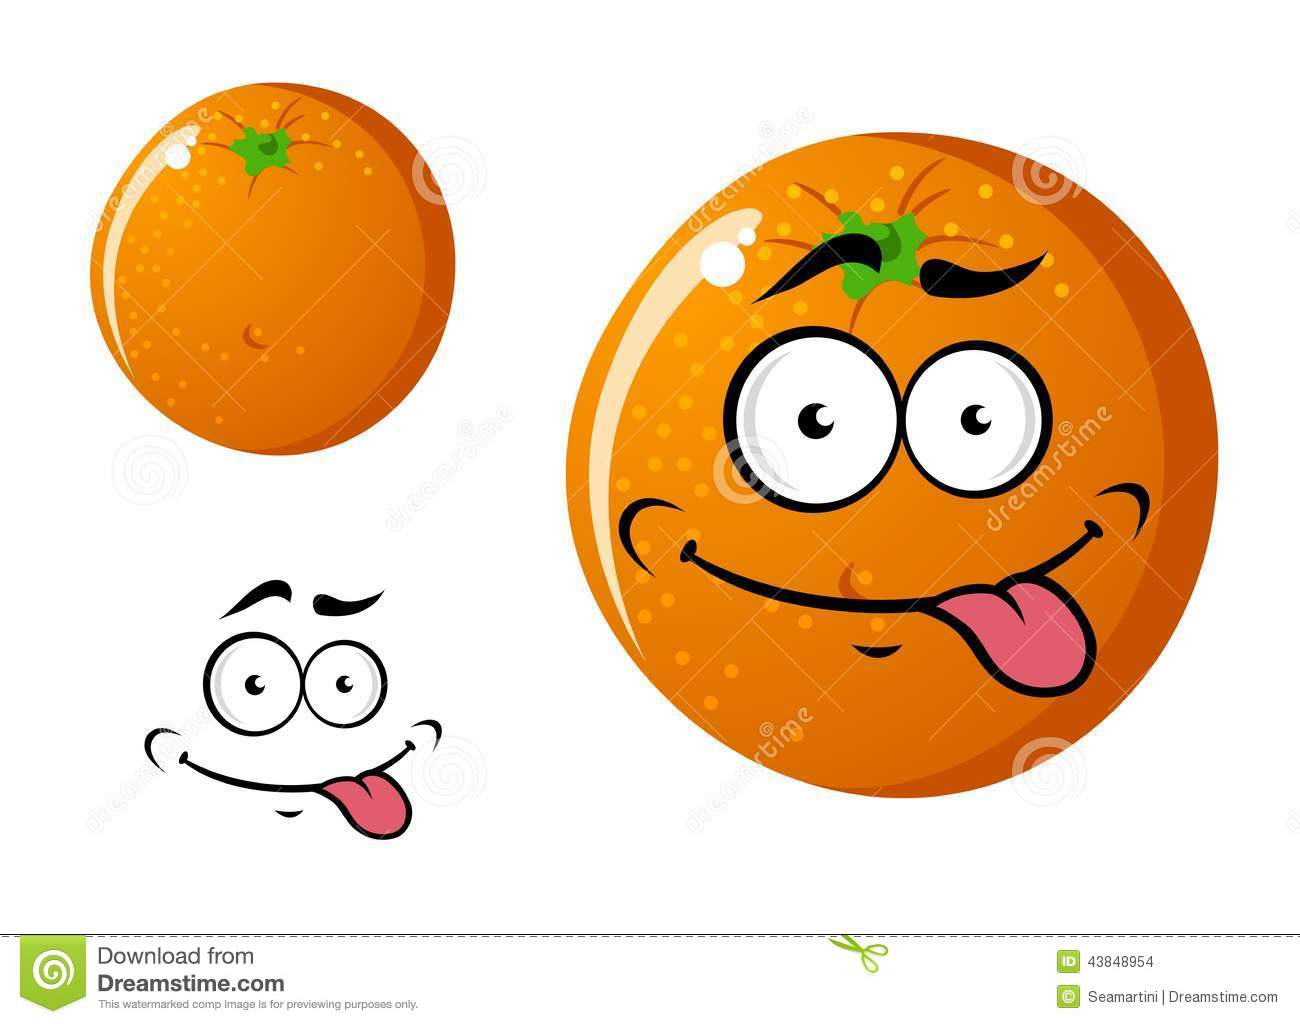 Royalty Free Stock Photo Fresh Green Cartoon Pear Fruit Image38675185 moreover Chilli Vector Illustration 46899 furthermore Stock Illustration Happy Smiling Cartoon Orange Fruit Cute Character Isolated White Background Image43848954 besides Cartoon Strawberry Juice Drink in addition Funny Cartoon Fruits Image 02 HD Images. on orange juice cartoon character